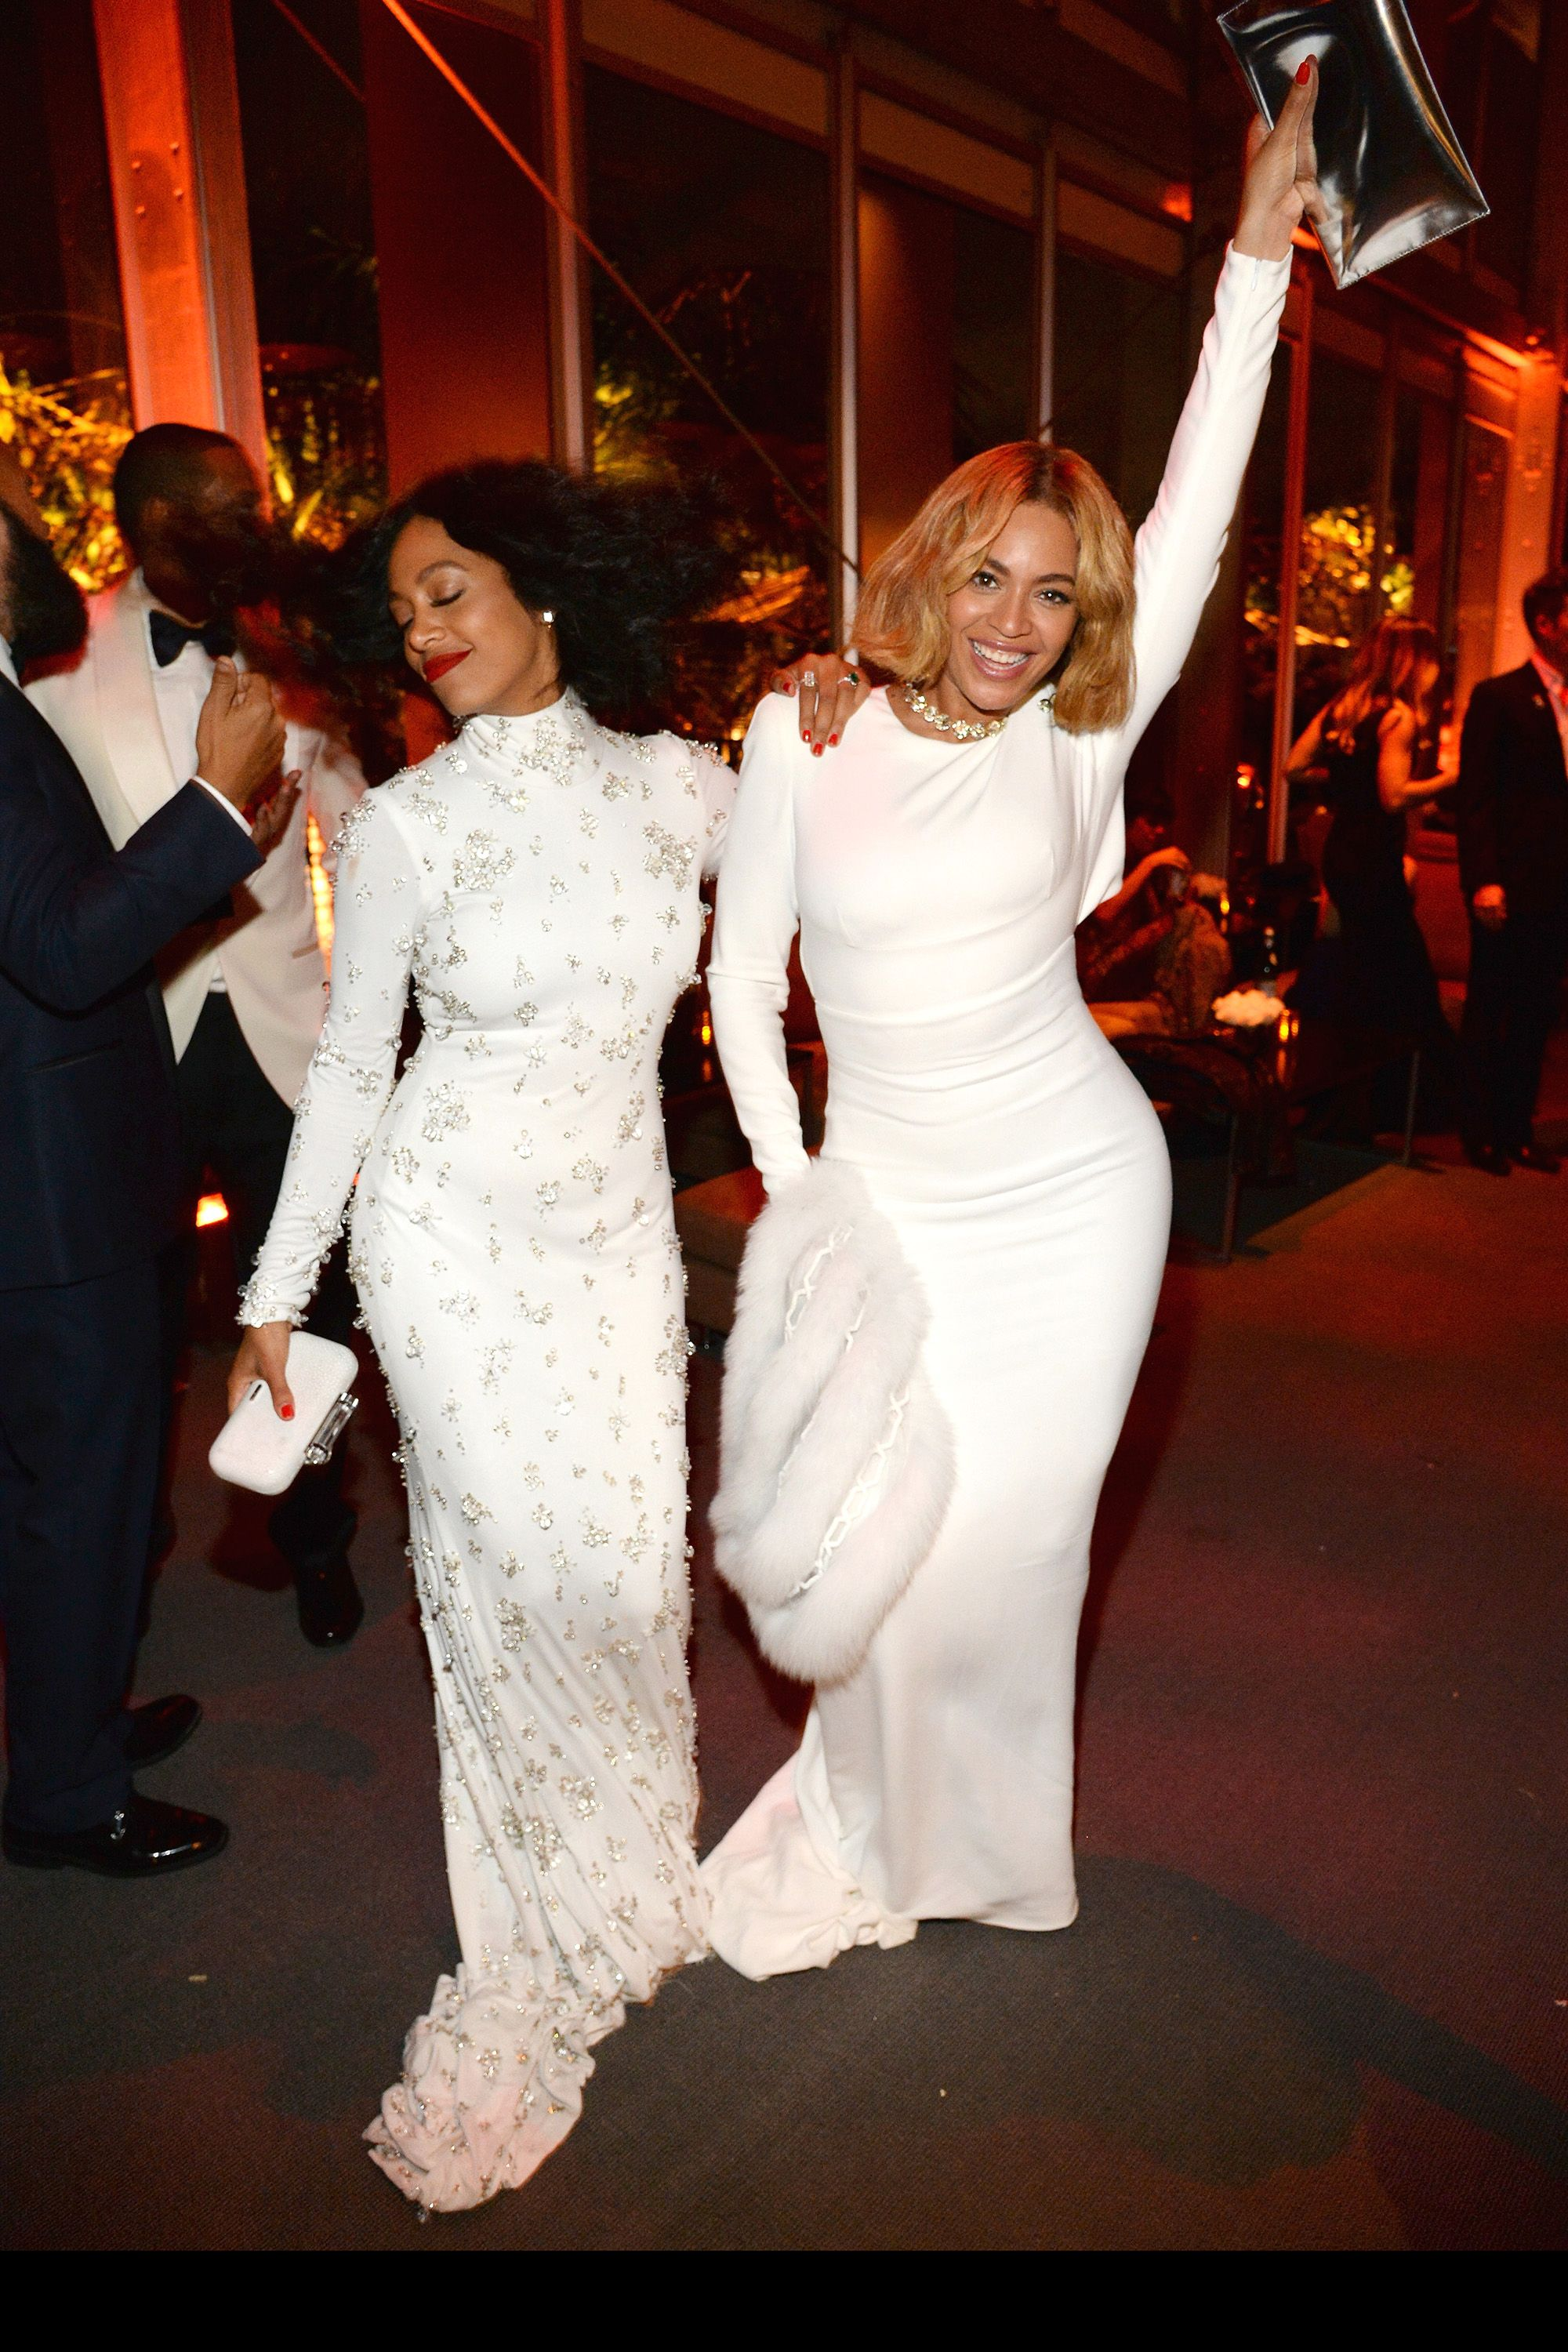 The Best Photos From The 2015 Oscars Parties Celebrity Dresses Stylish Celebrities White Gowns [ 3000 x 2000 Pixel ]